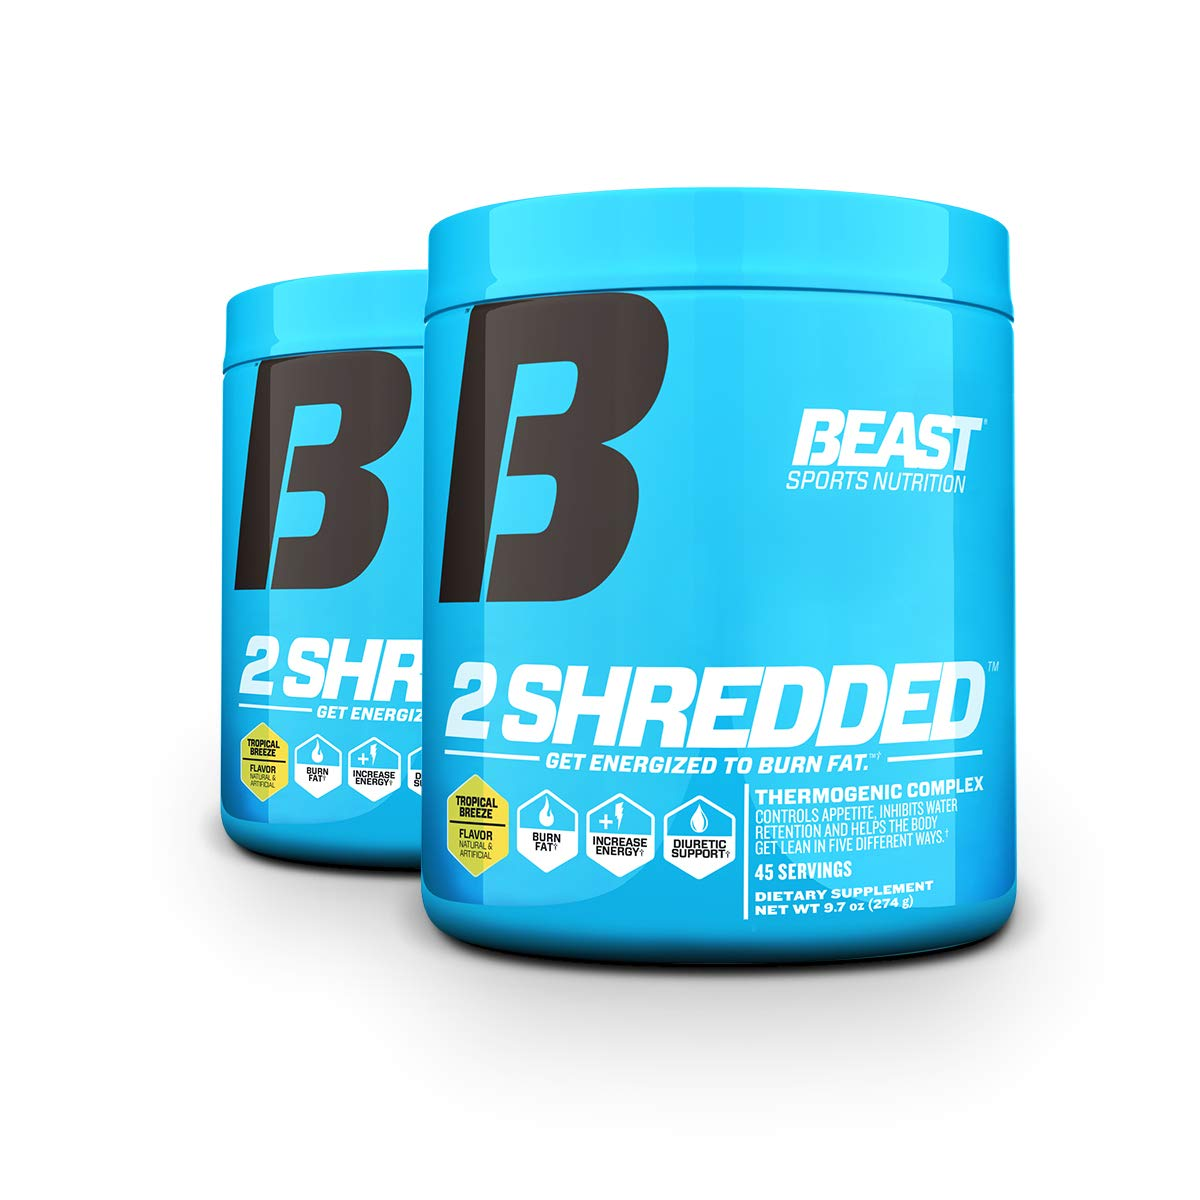 Beast Sports Nutrition 2 Shredded: Thermogenic Powder, Metabolism Booster, and Appetite Suppressant | Best Fat Burner for Weight Loss and Reduced Water Retention, 45 Servings, 2 Pack (Tropical Breeze)